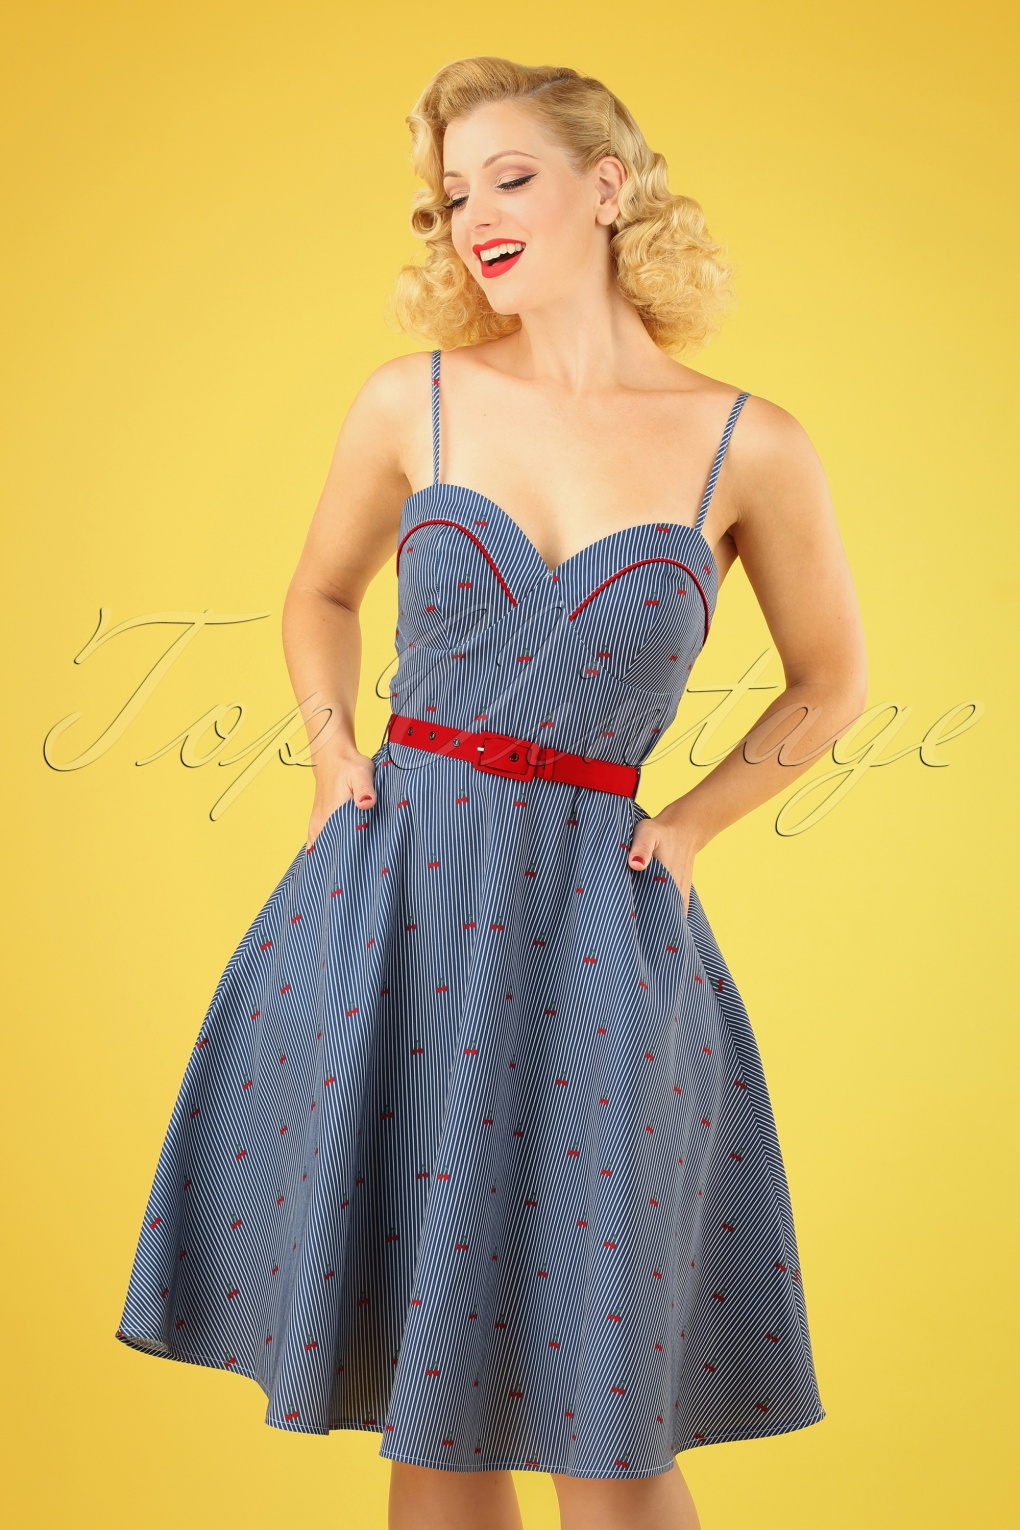 Sailor Dresses, Nautical Theme Dress, WW2 Dresses 50s Shelley Cherry and Stripes Flared Dress in Blue �47.68 AT vintagedancer.com